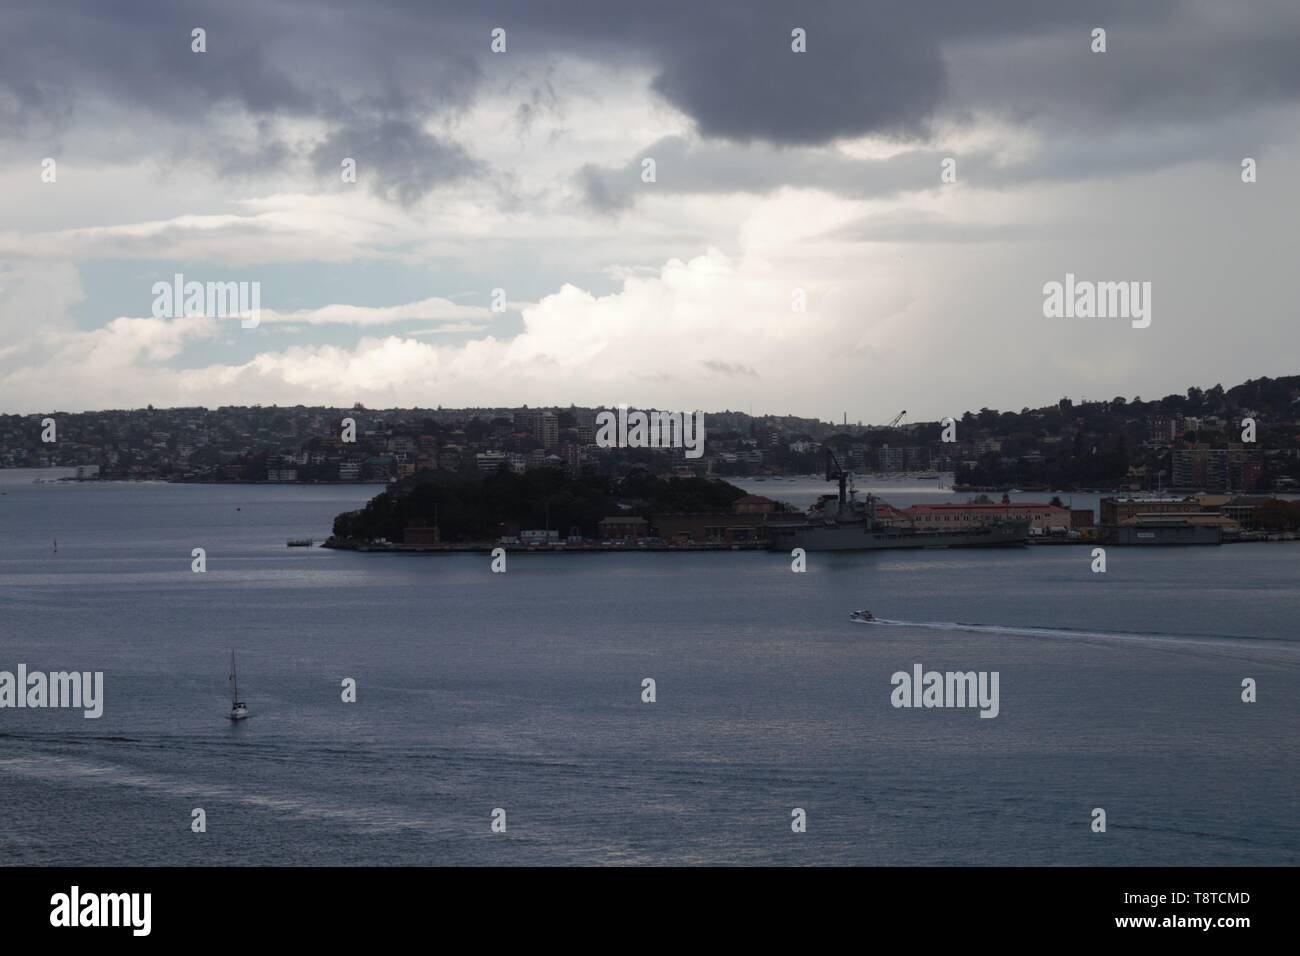 Panorama of the bay of the Sydney opera house - Stock Image